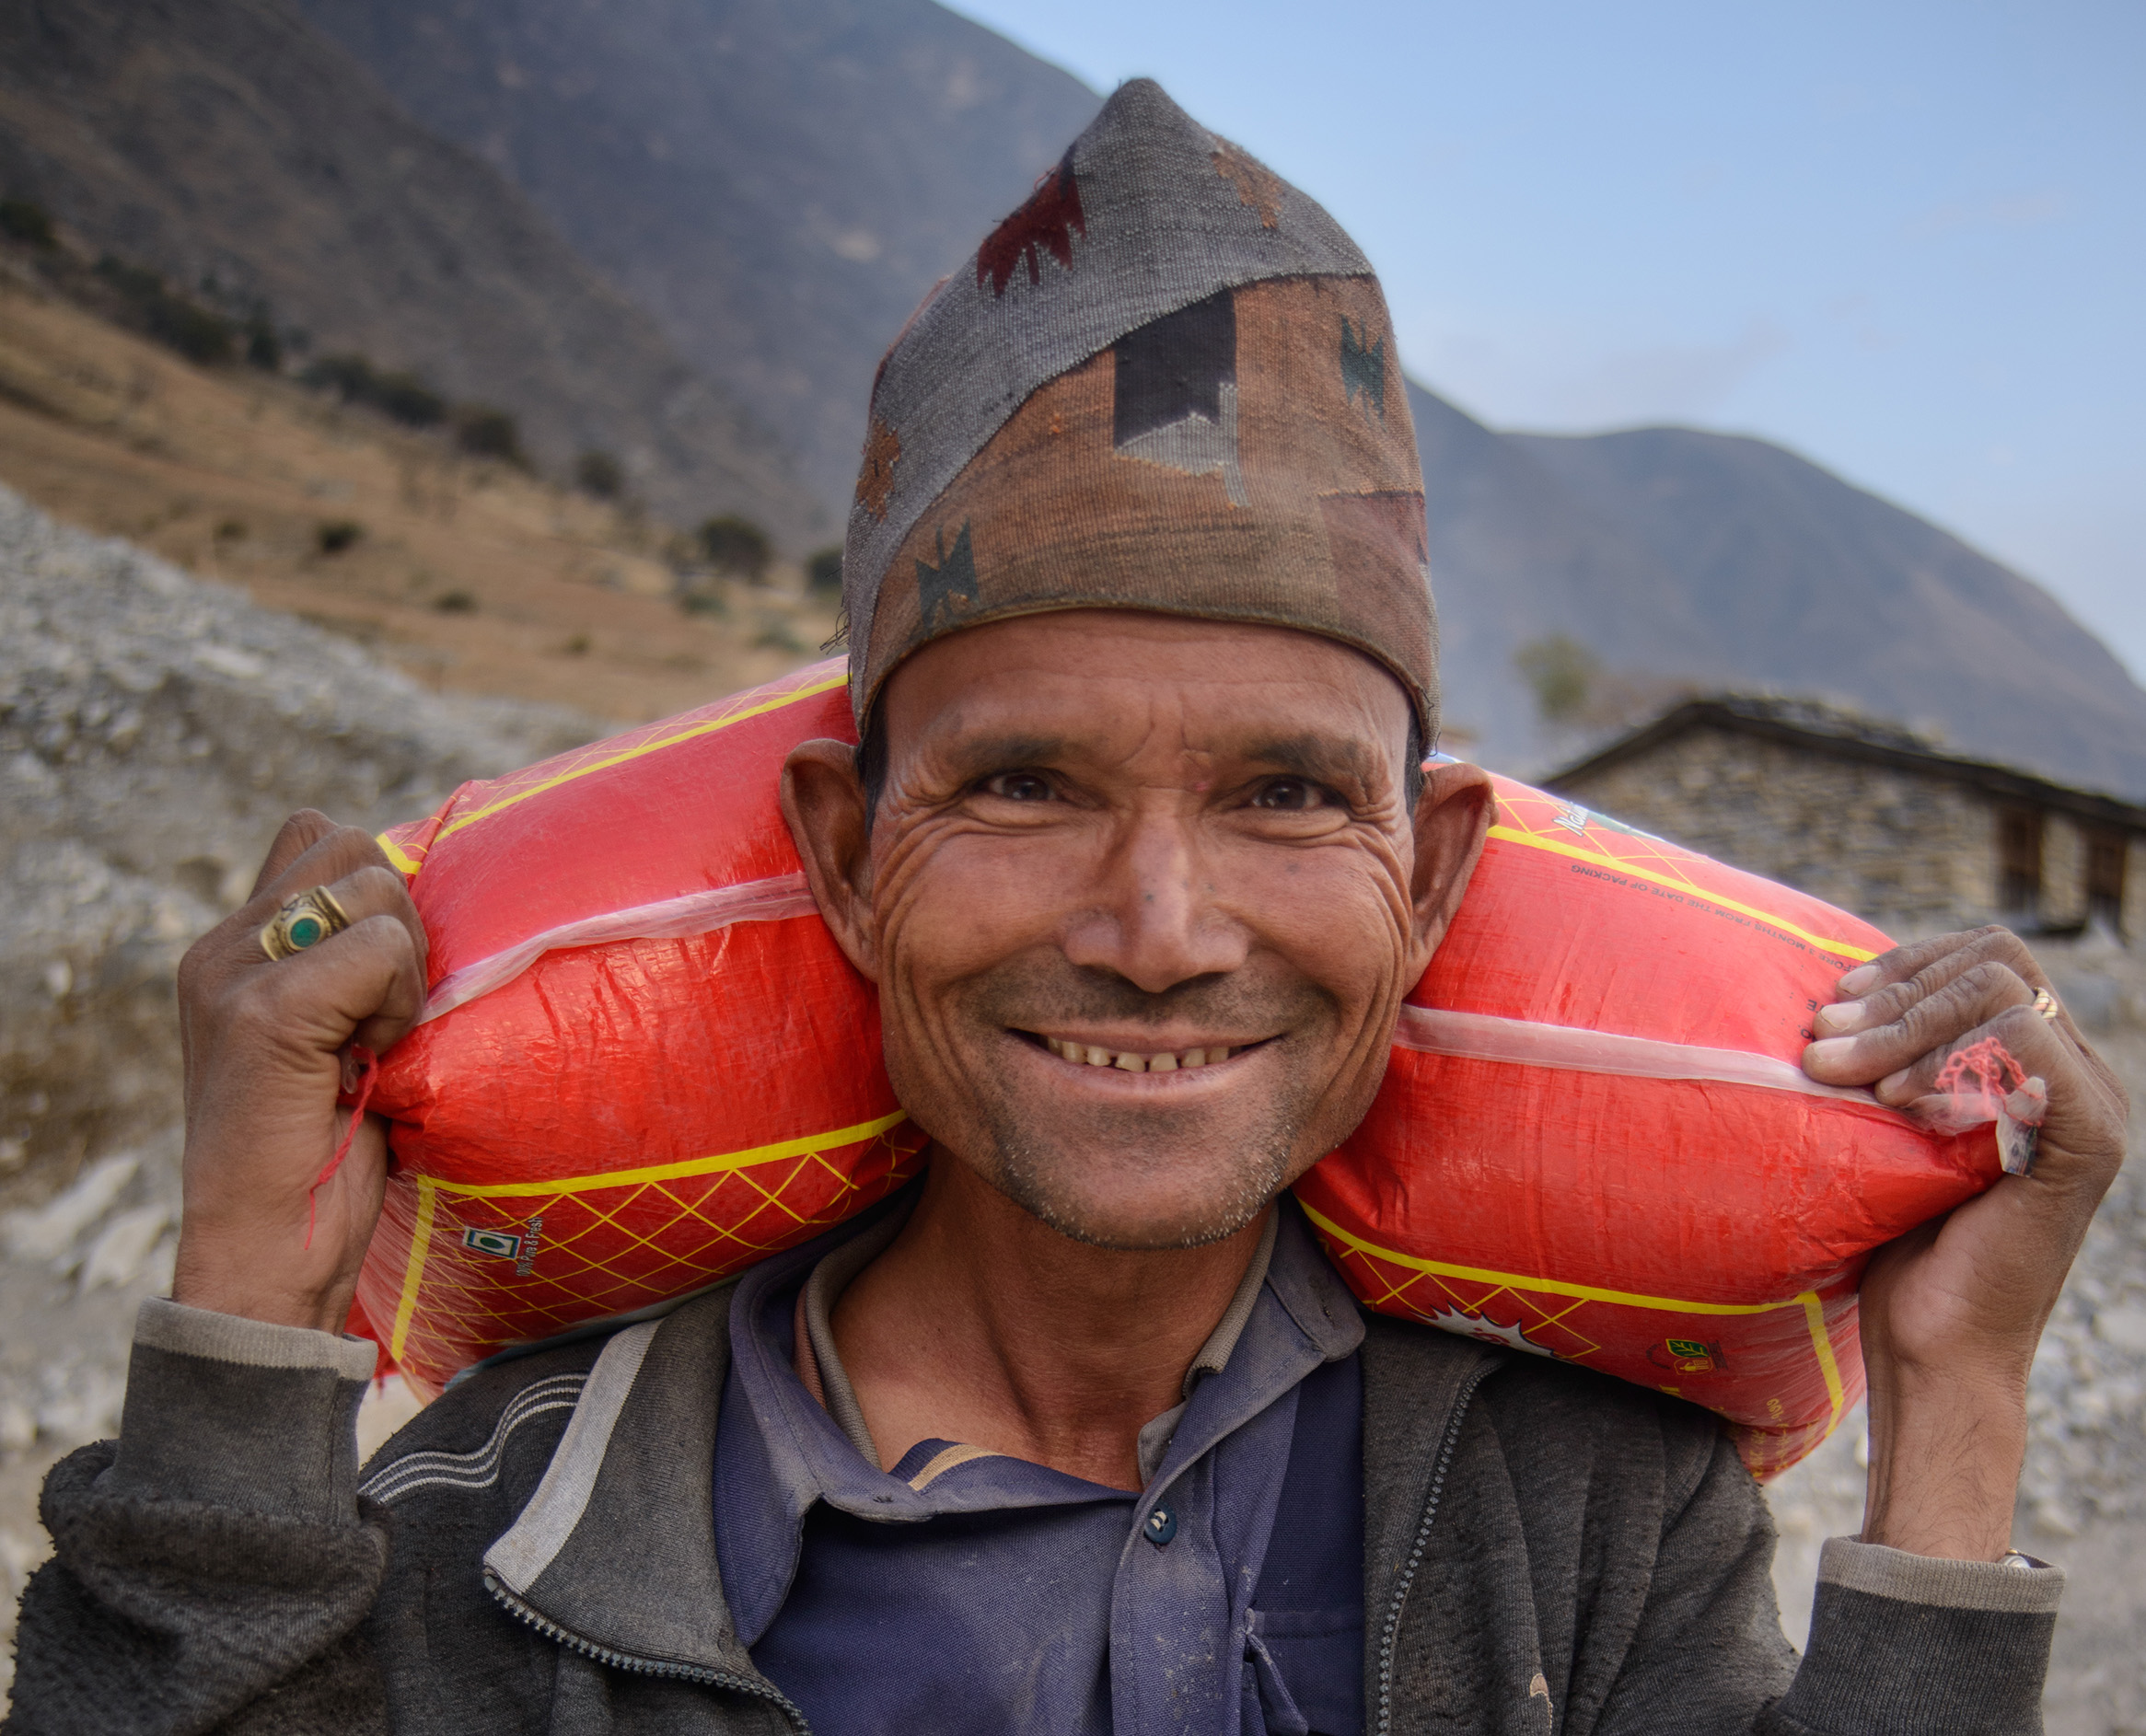 Portraits_of_Nepali_men_-_Photo_by_Garrett_N_4-sm